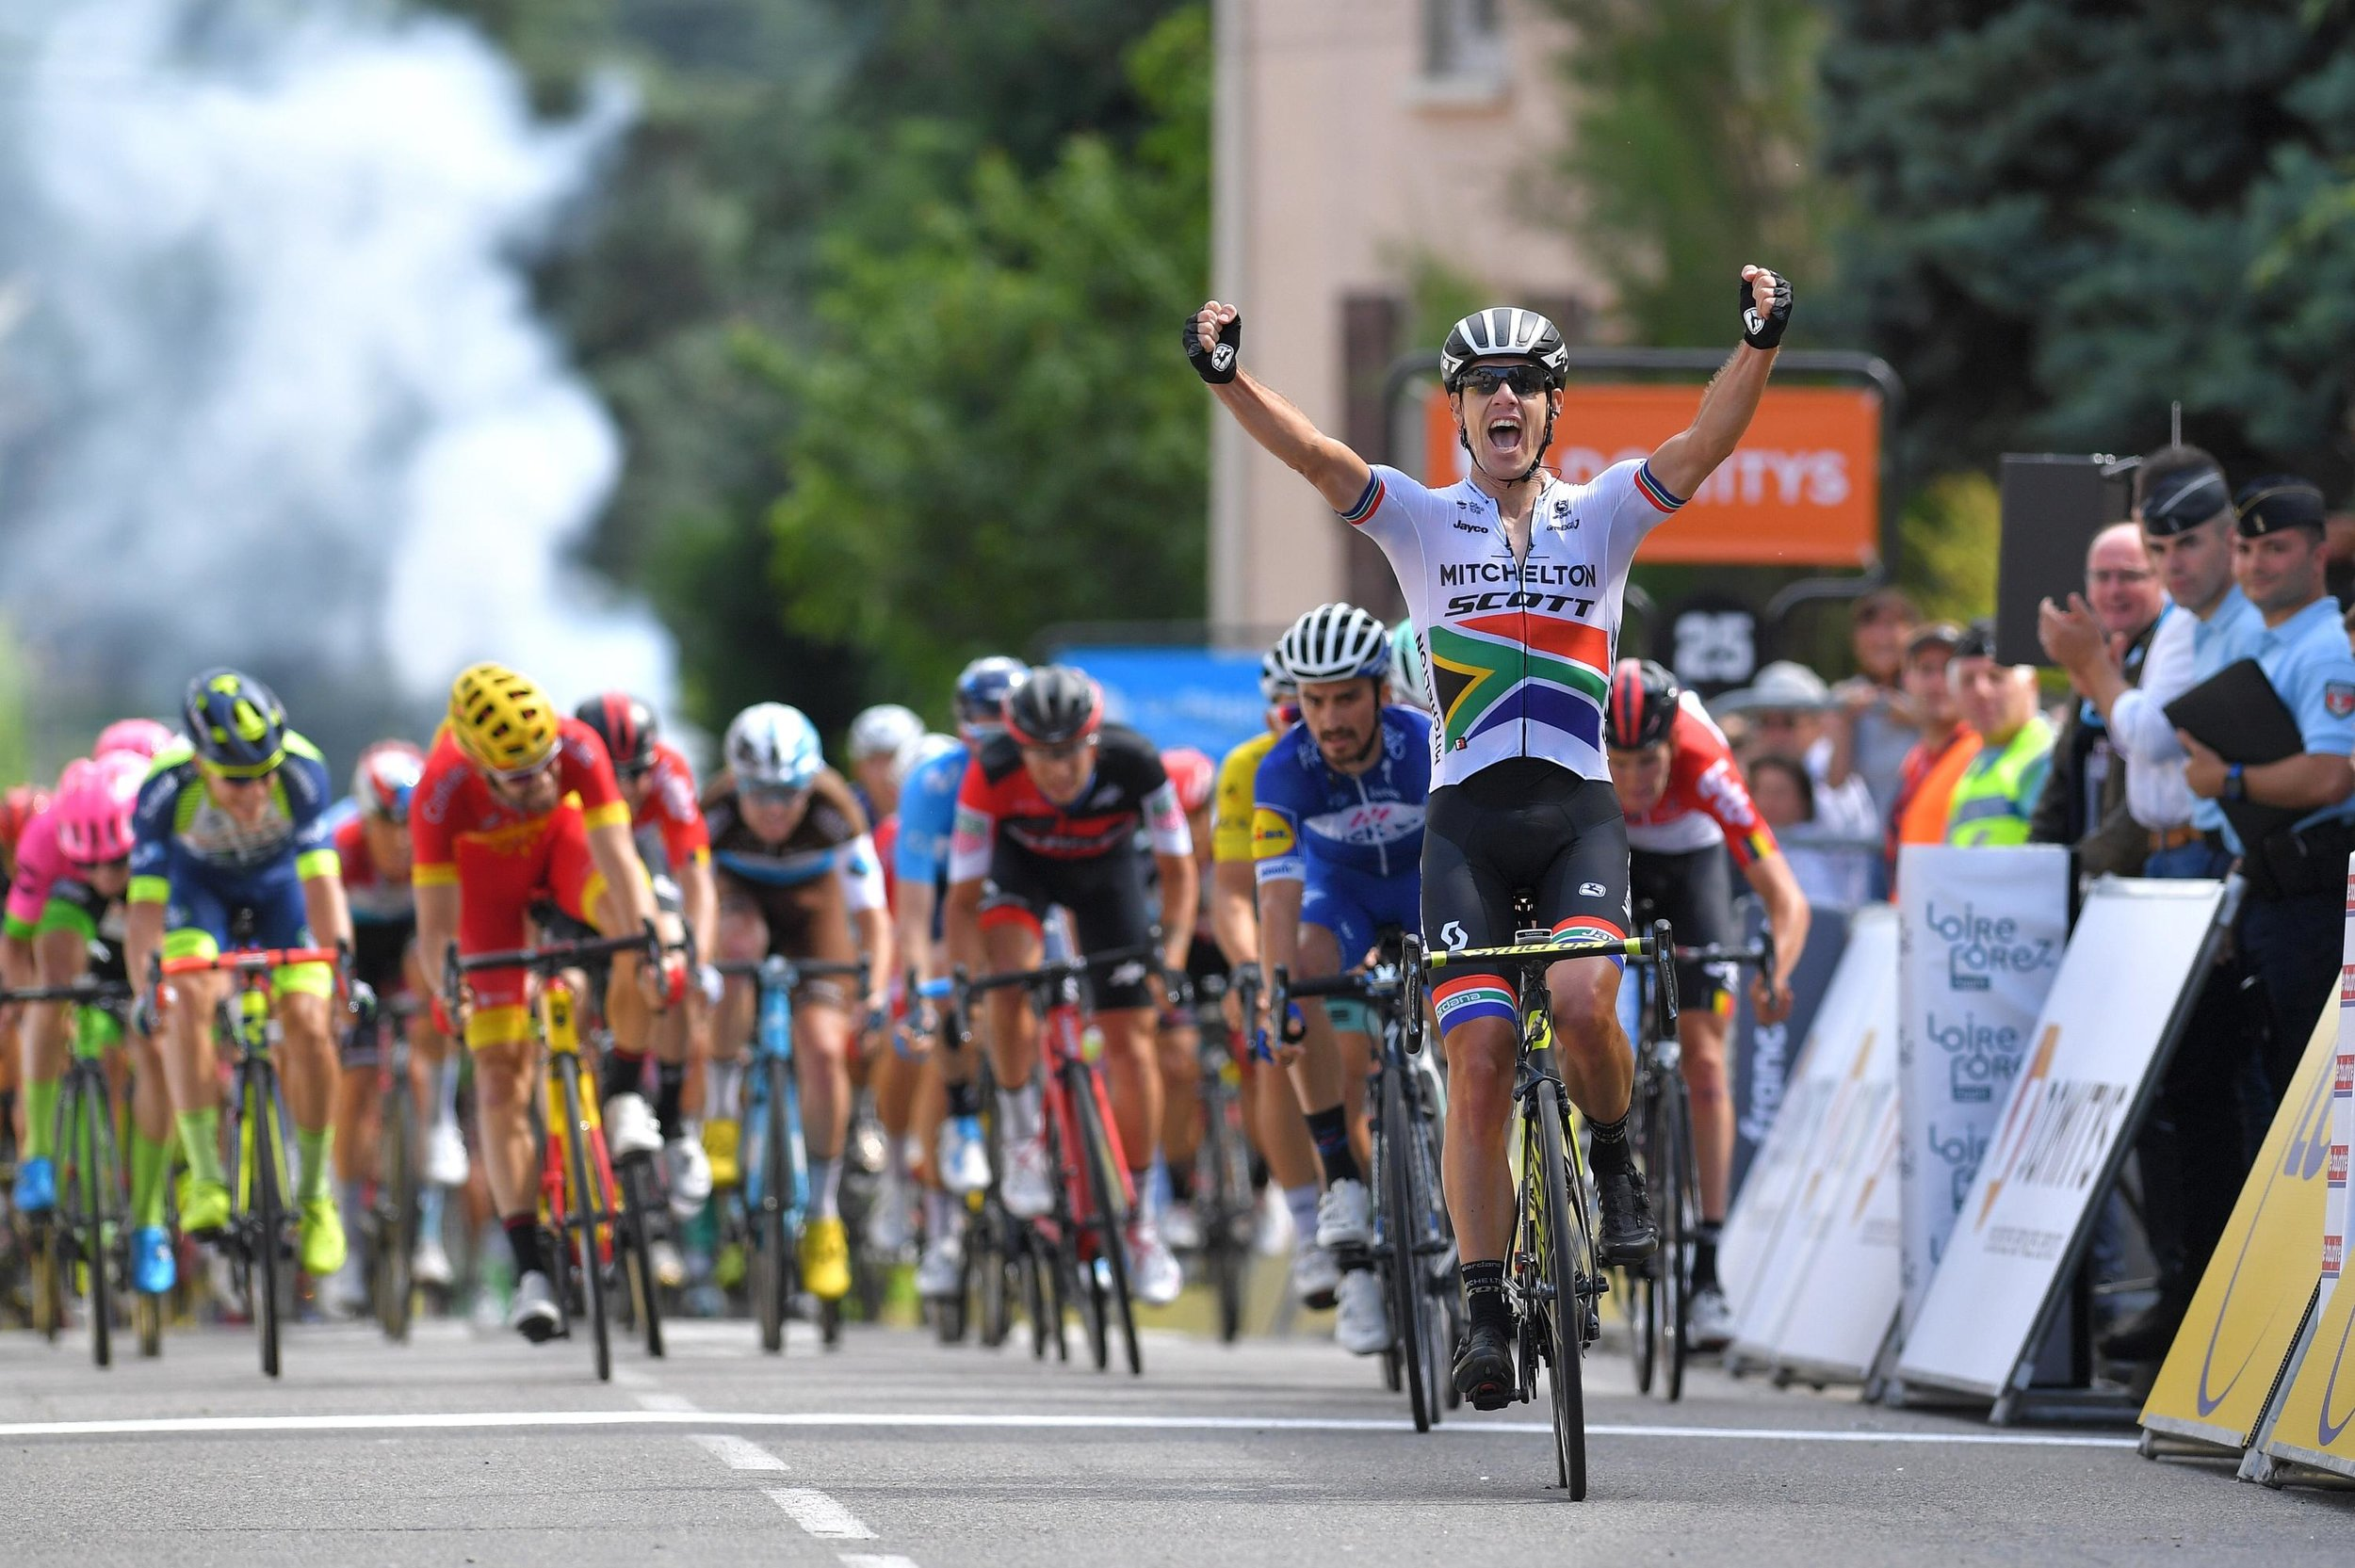 South African champion  Daryl Impey  continued  Mitchelton-SCOTT 's winning ways by stealing the victory on today's first road stage of  Criterium du Dauphine.   Photo courtesy of Getty Images